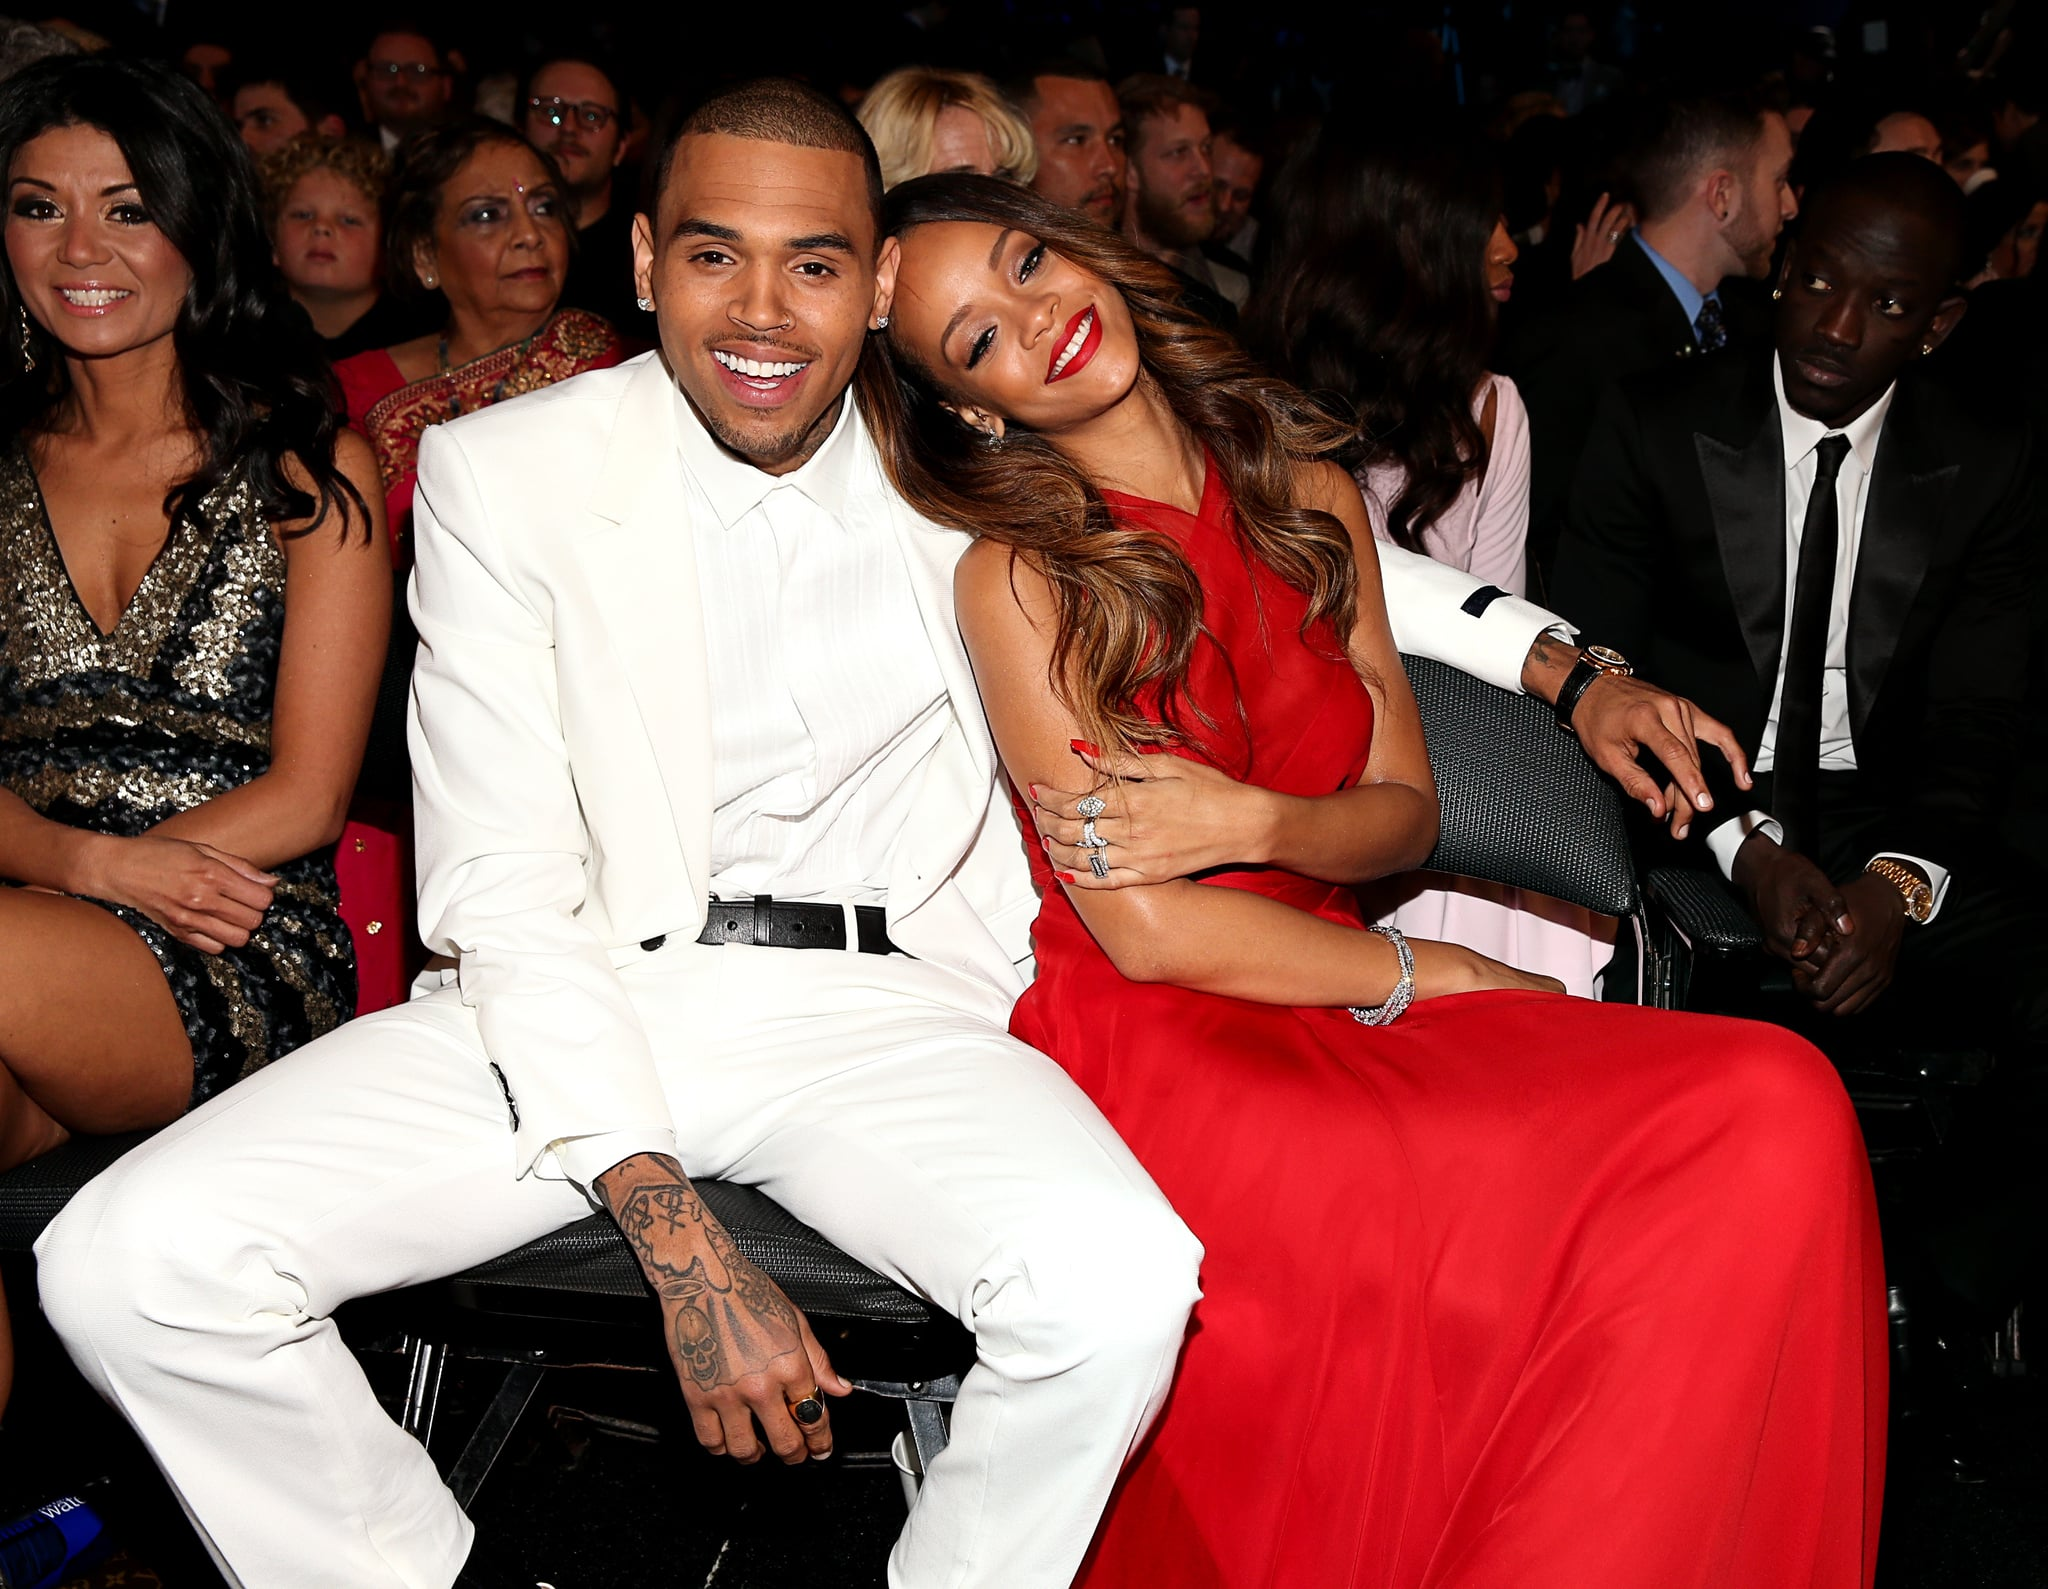 Chris Brown and Rihanna cuddled up in the front row on Sunday night at the Grammys.